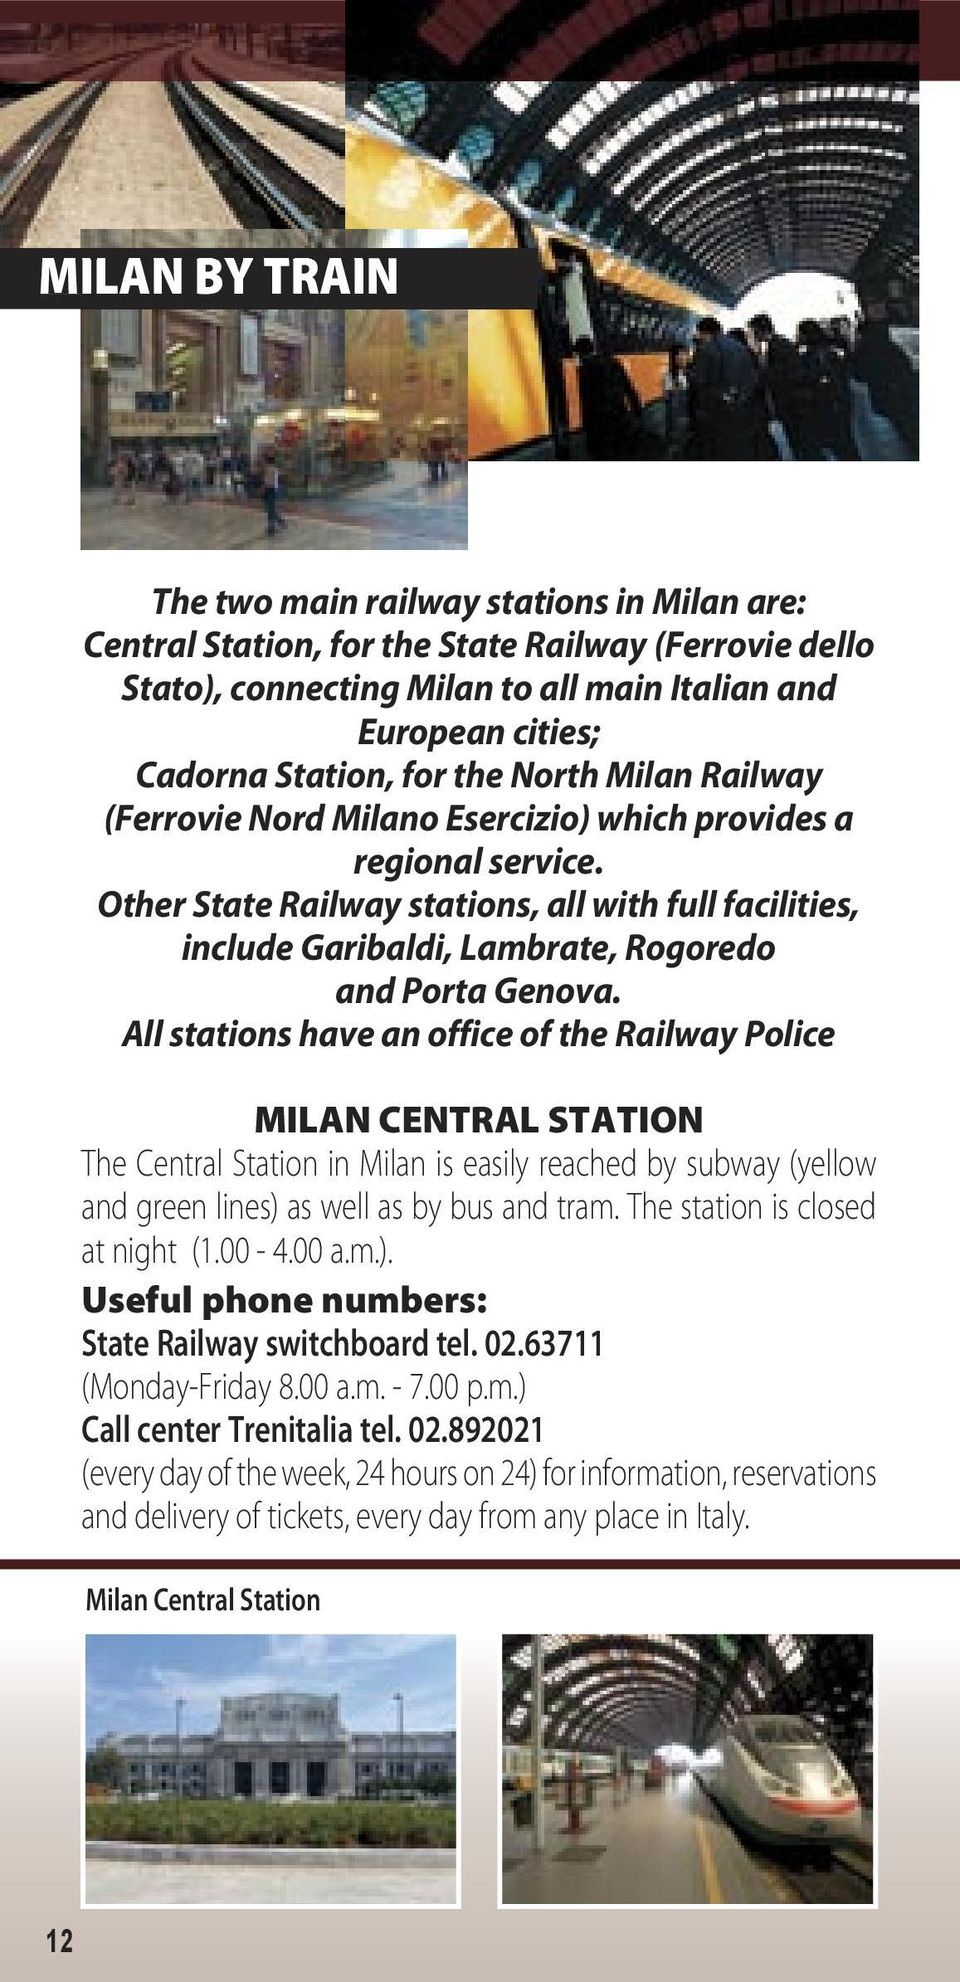 Other State Railway stations, all with full facilities, include Garibaldi, Lambrate, Rogoredo and Porta Genova.